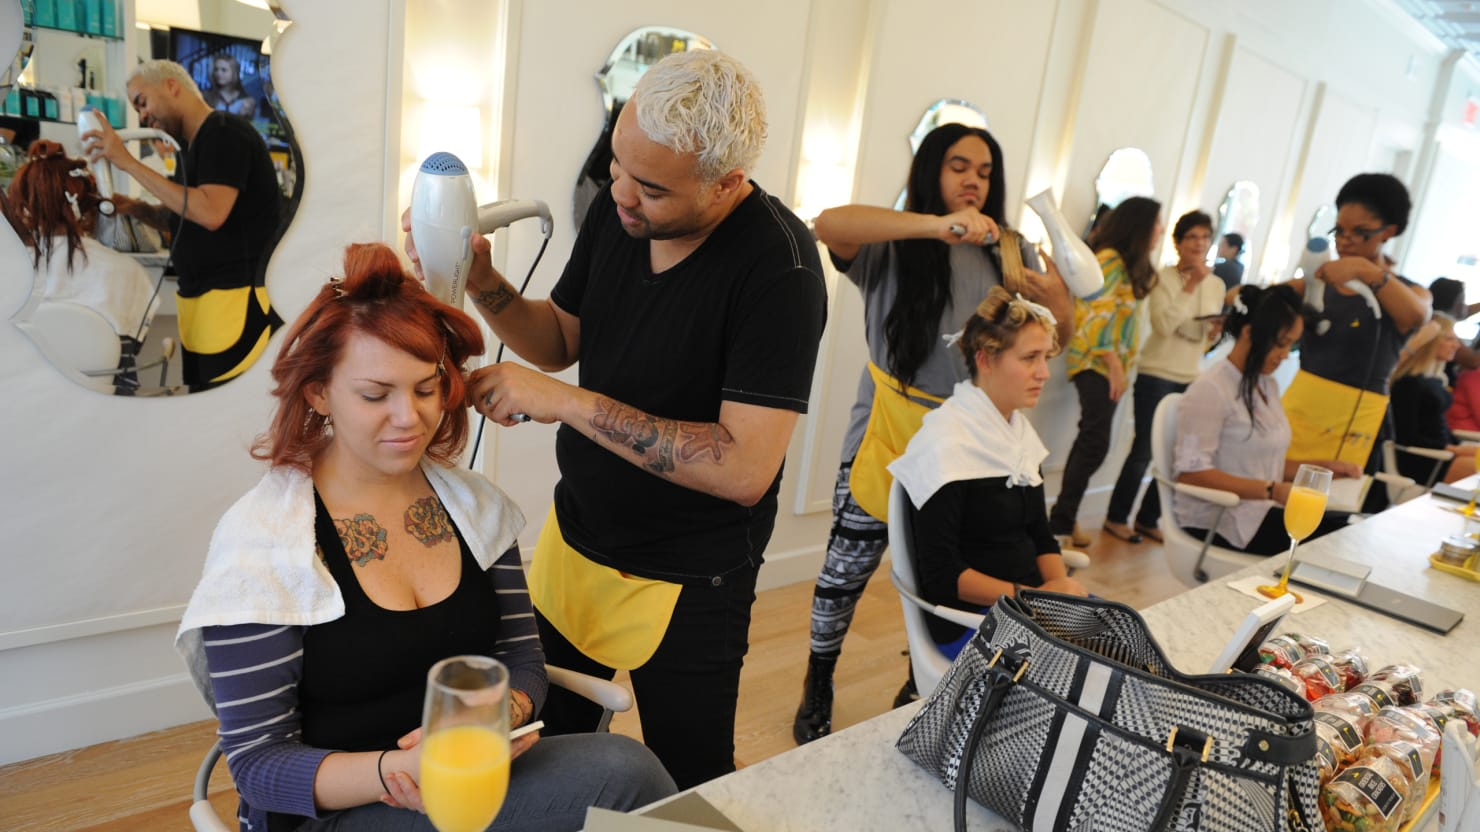 Blow Dry Bars Are A Thriving Industry Disrupting The Salon Business